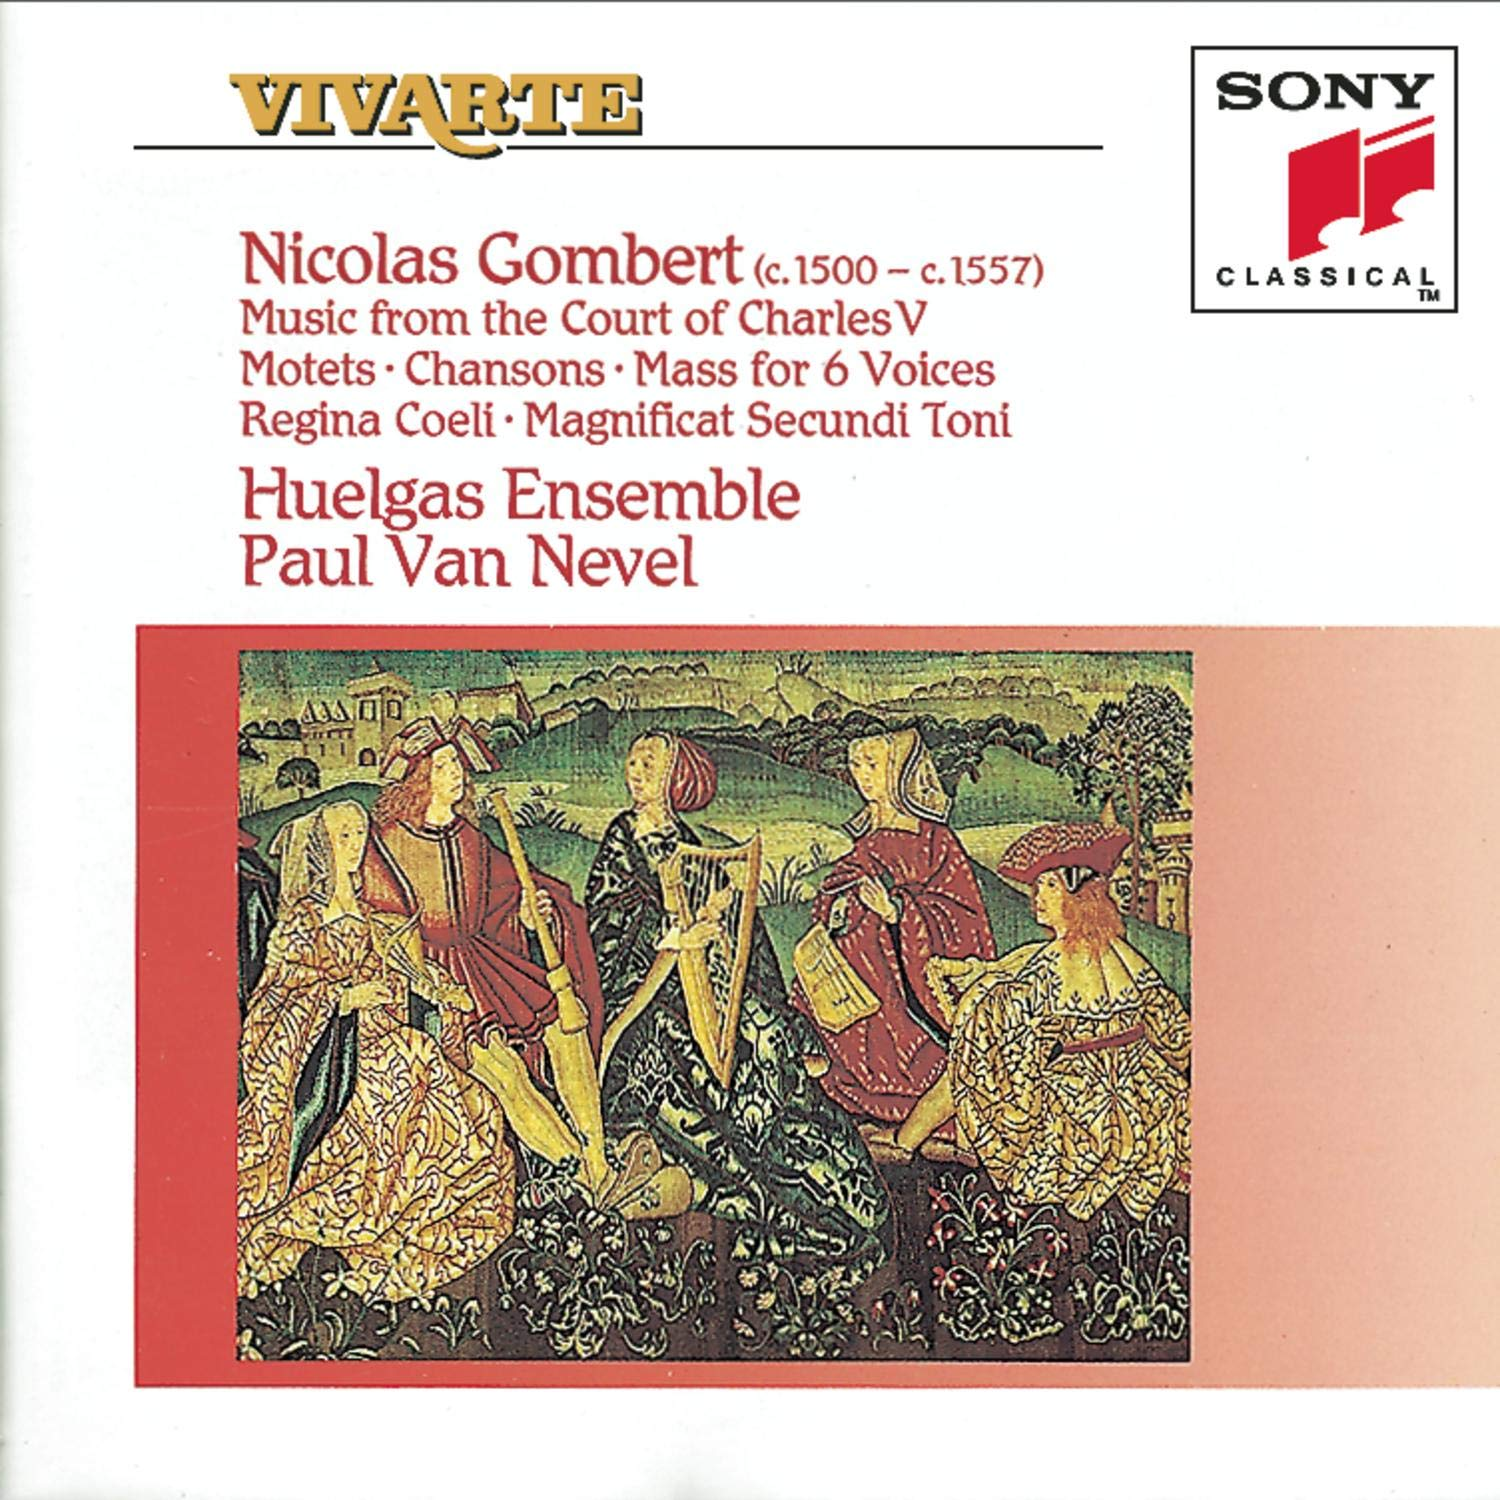 Gombert: specialty shop Music from the of Fashionable Court Charles V